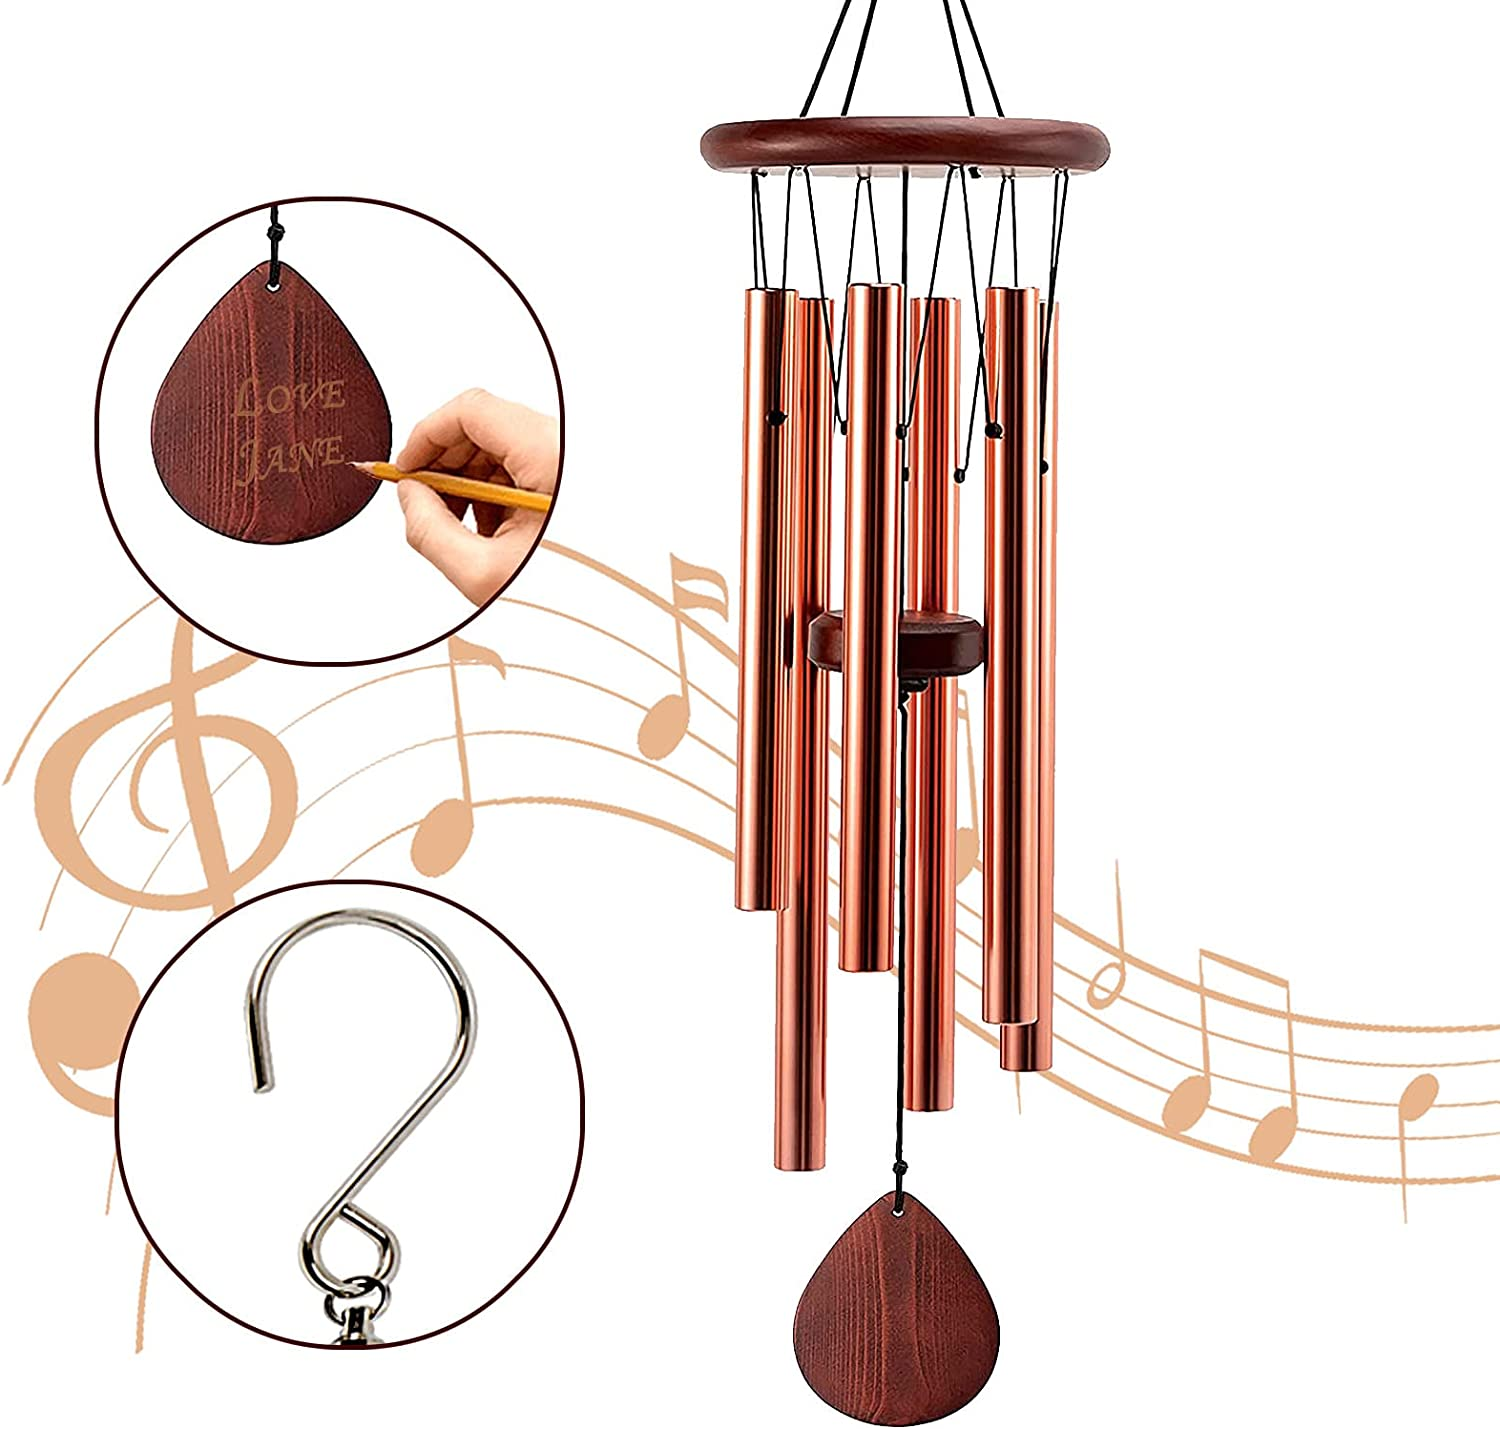 Lumuasky Outdoors Wind Chime, Large Memorial Wind Chimes 6 Aluminum Tubes Wooden Wind Bell, Best Gift Chimes for Outside Patio Garden Decor (Rose Gold, 32 Inch)